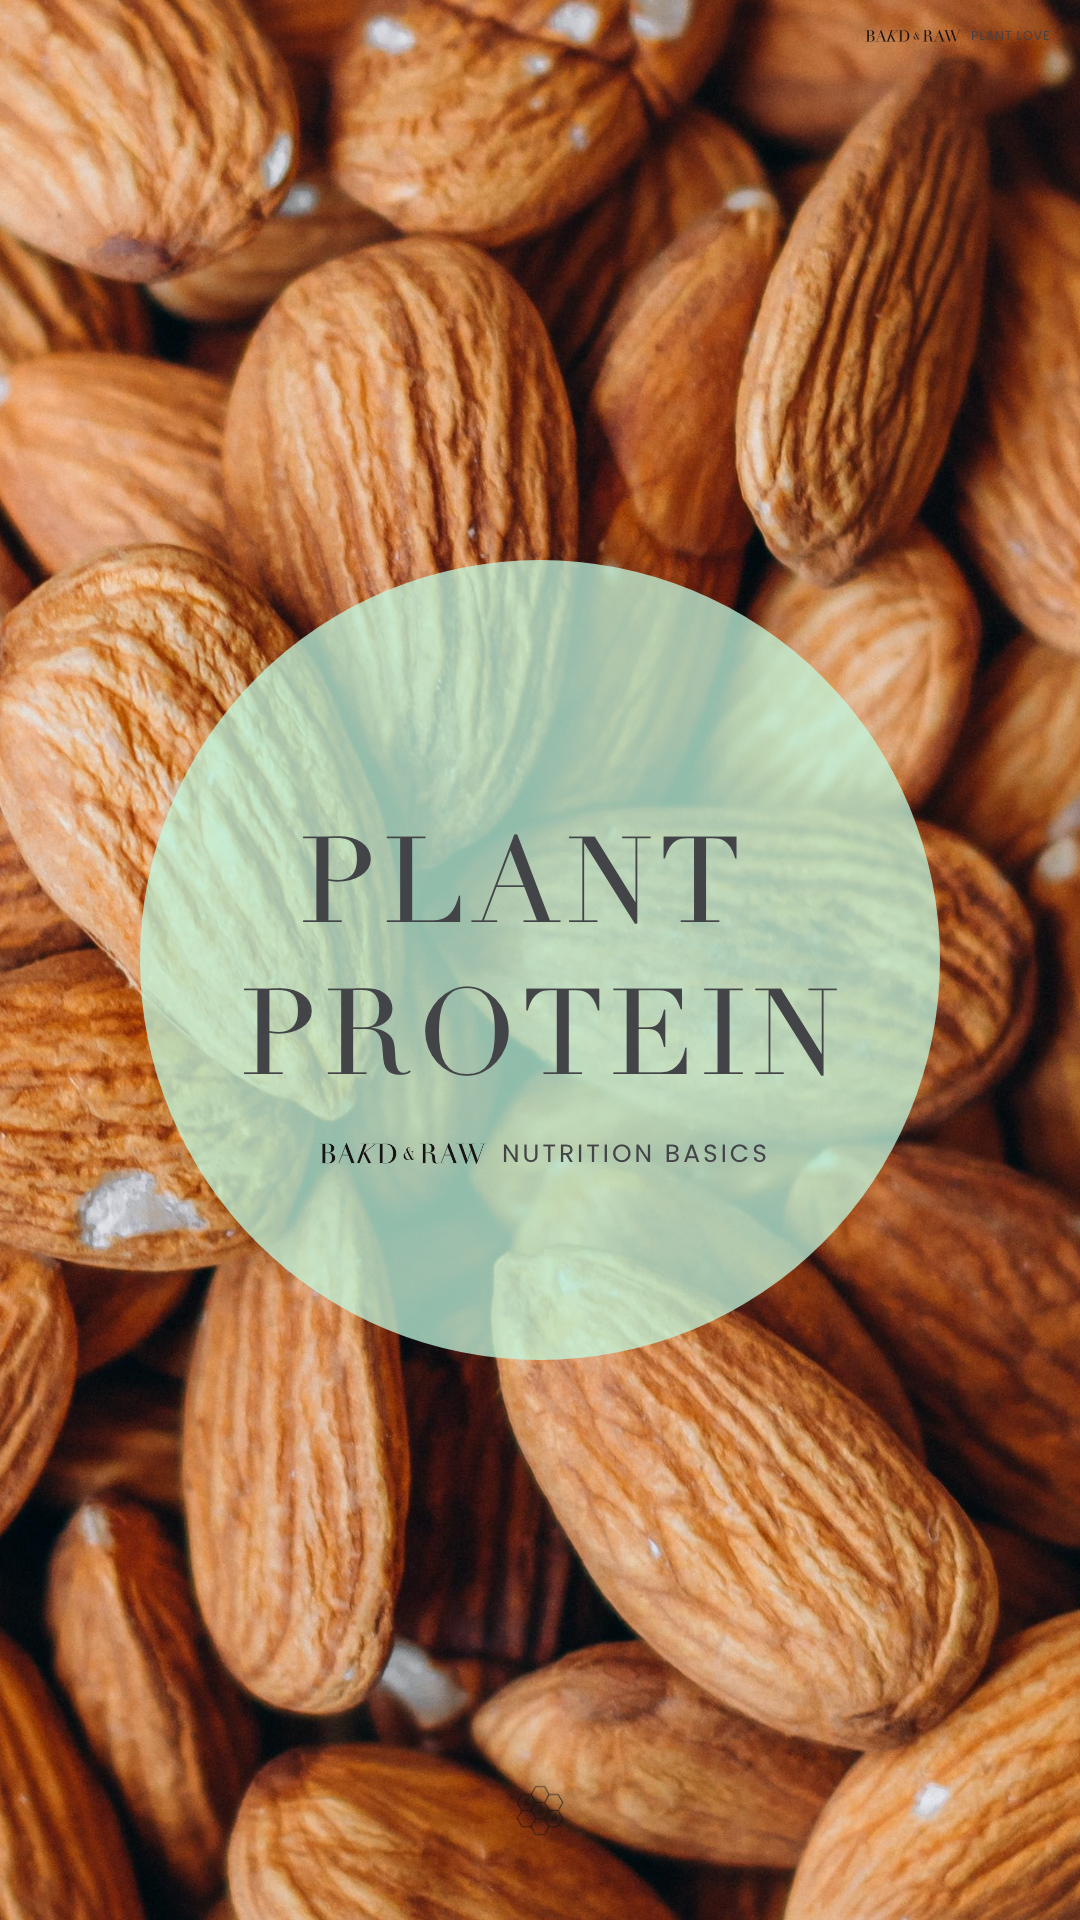 Bakd&Raw Plant Protein Guide; Nuts